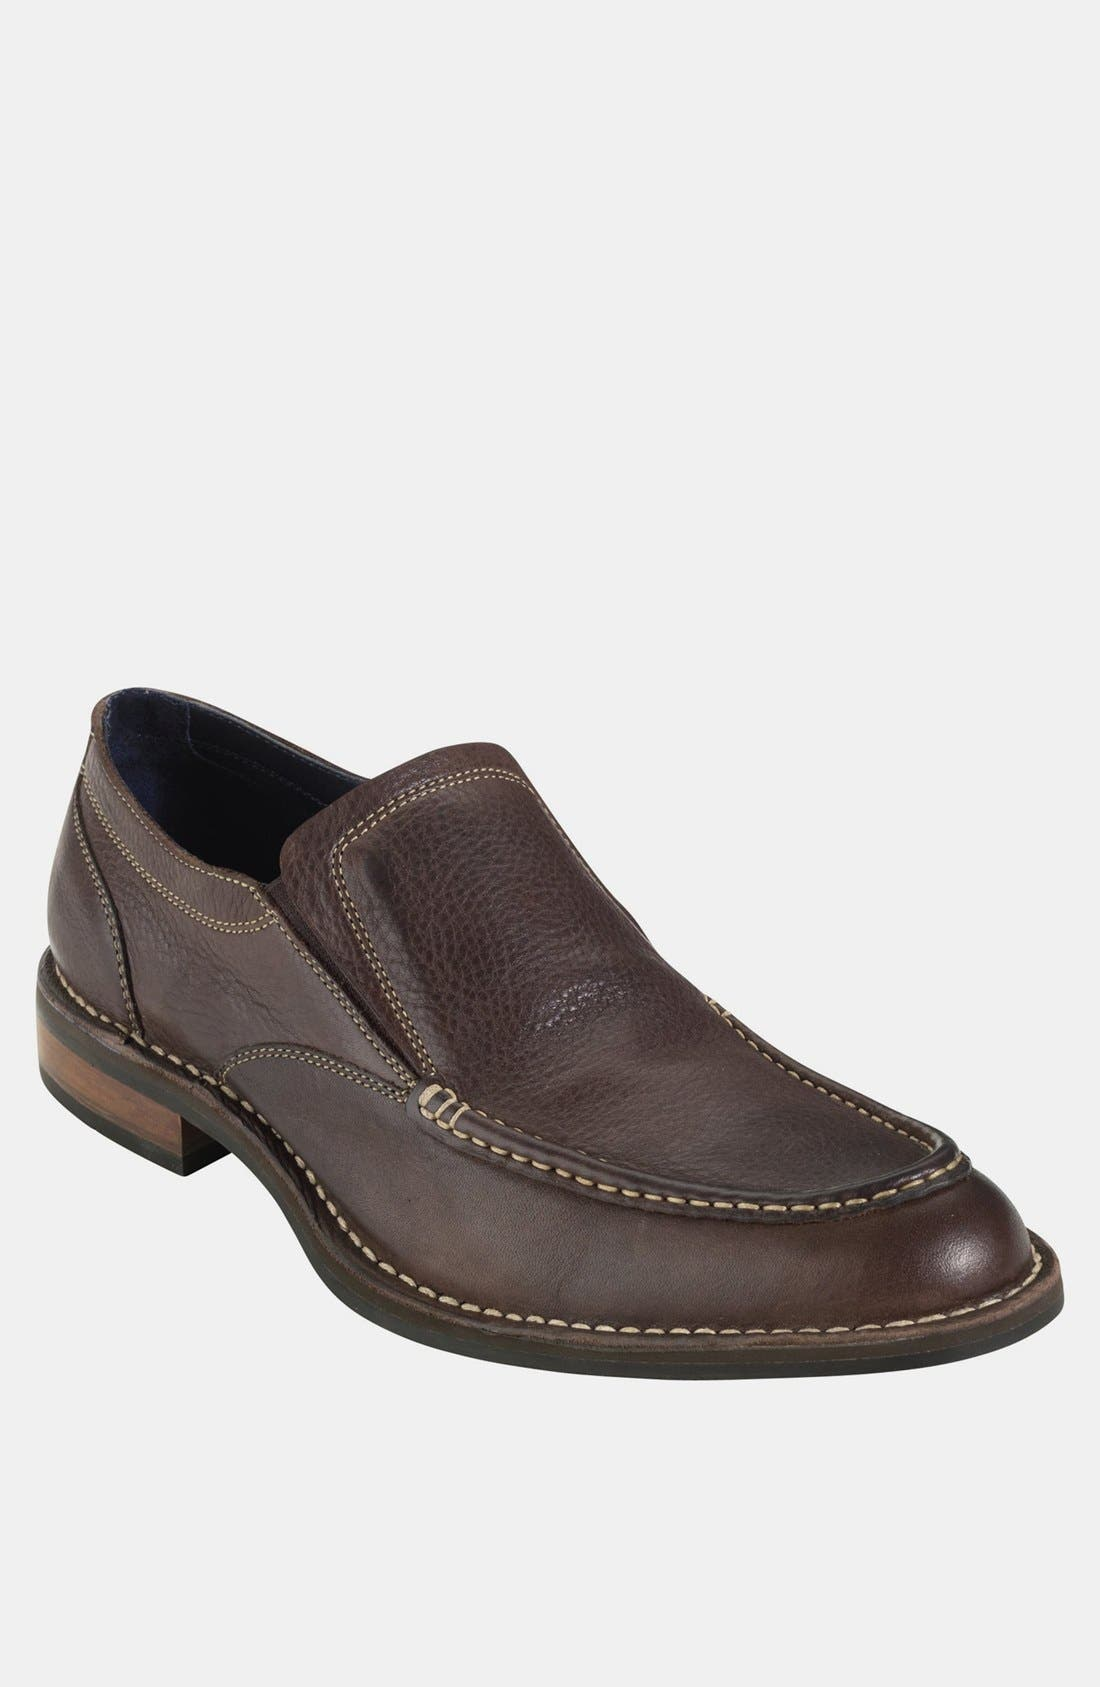 Alternate Image 1 Selected - Cole Haan 'Centre St.' Venetian Loafer